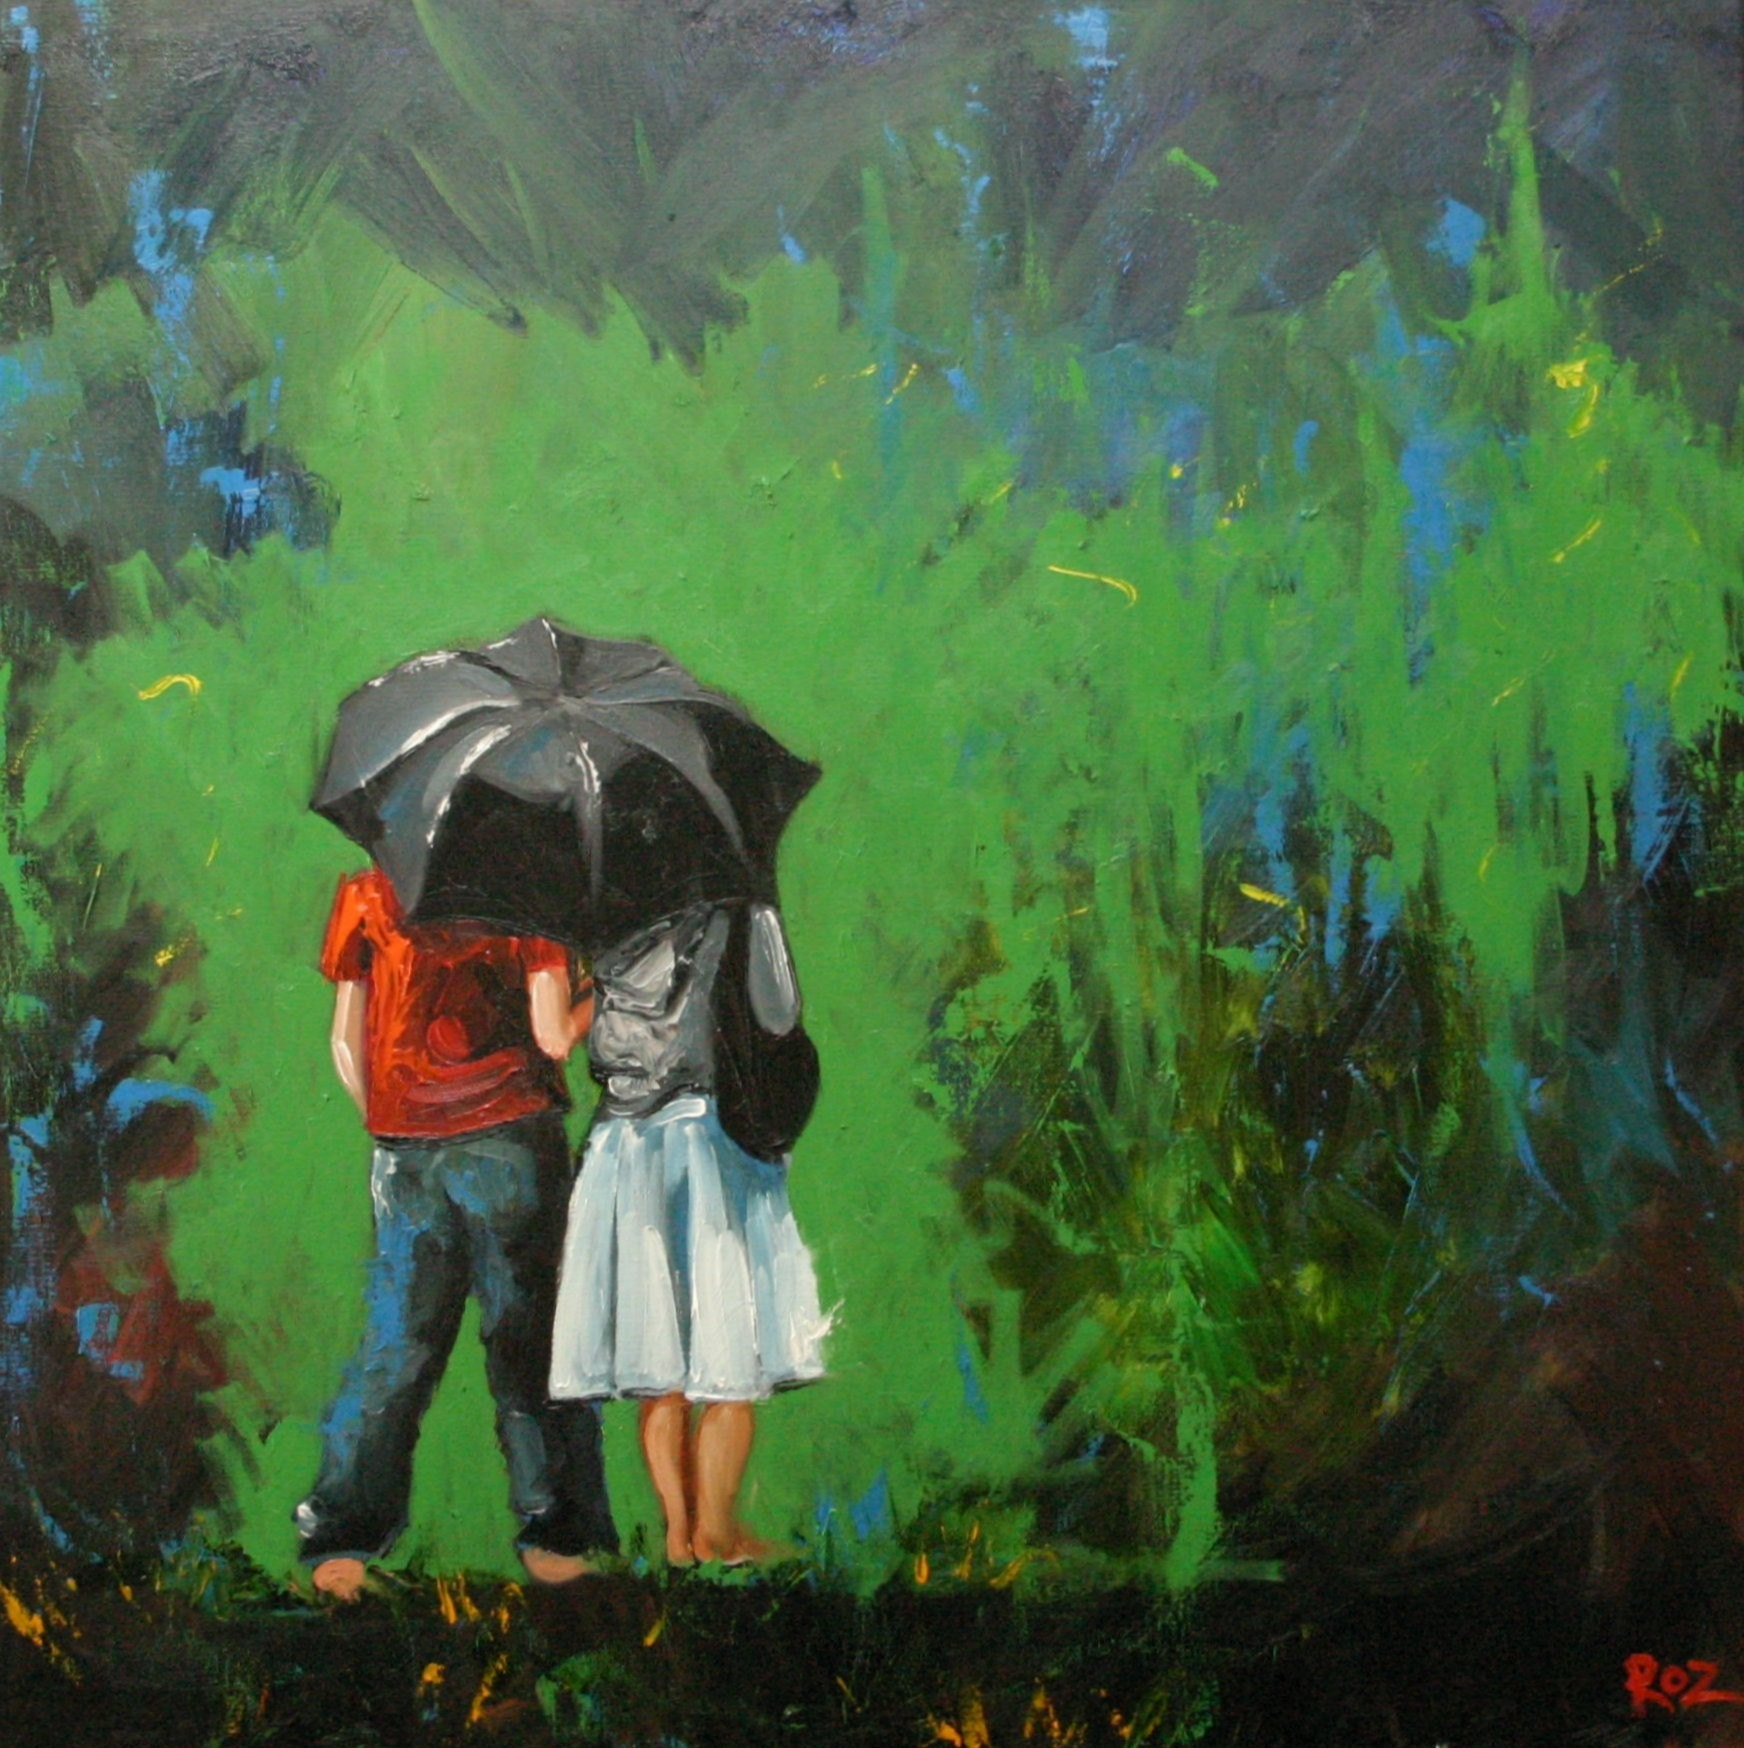 Couple 1 30x30inch Original Oil Painting By Roz SALE